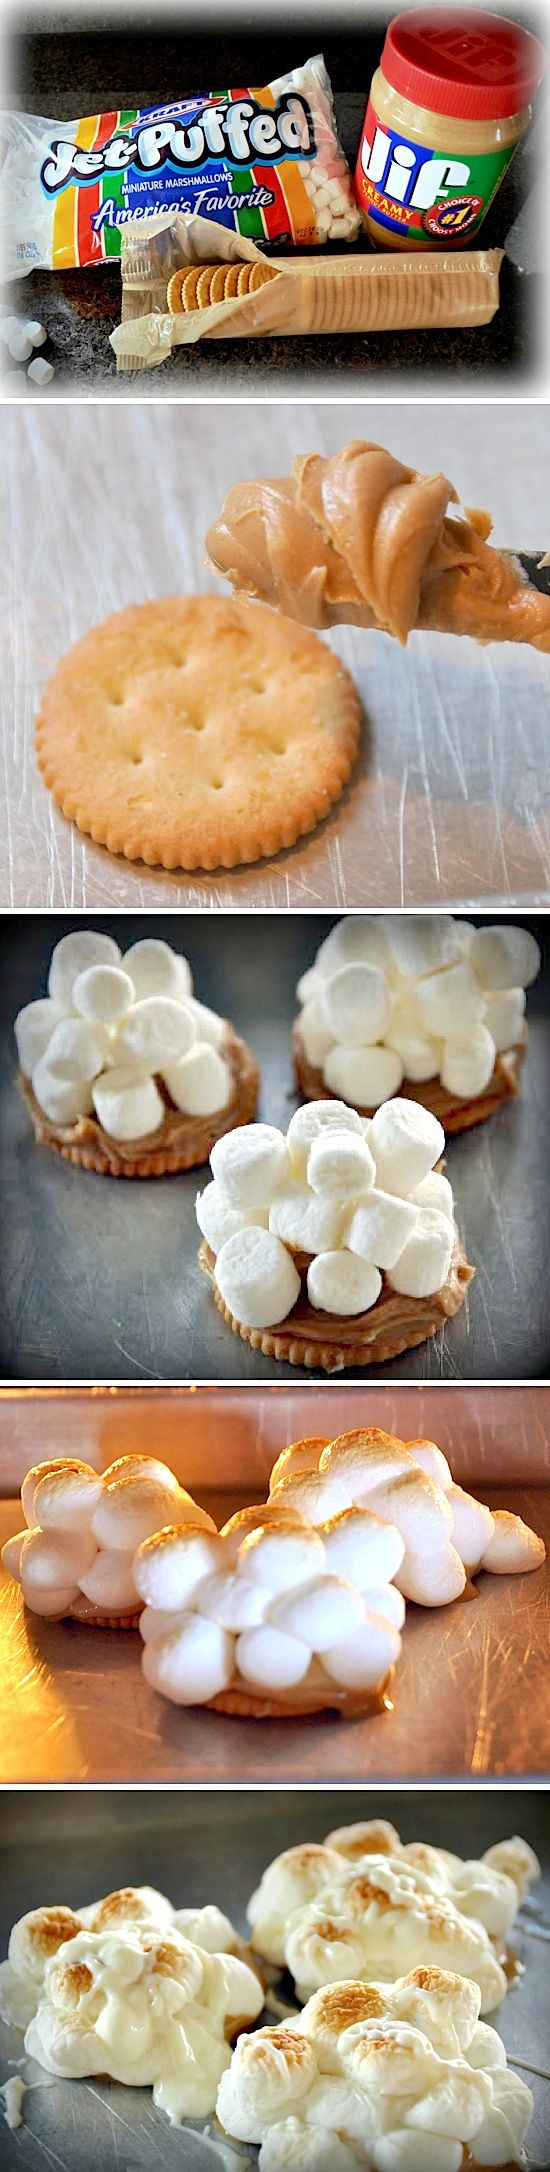 Peanut Butter Marshmallow Ritz | Recipe By Photo - perfect for our summer camping adventures!